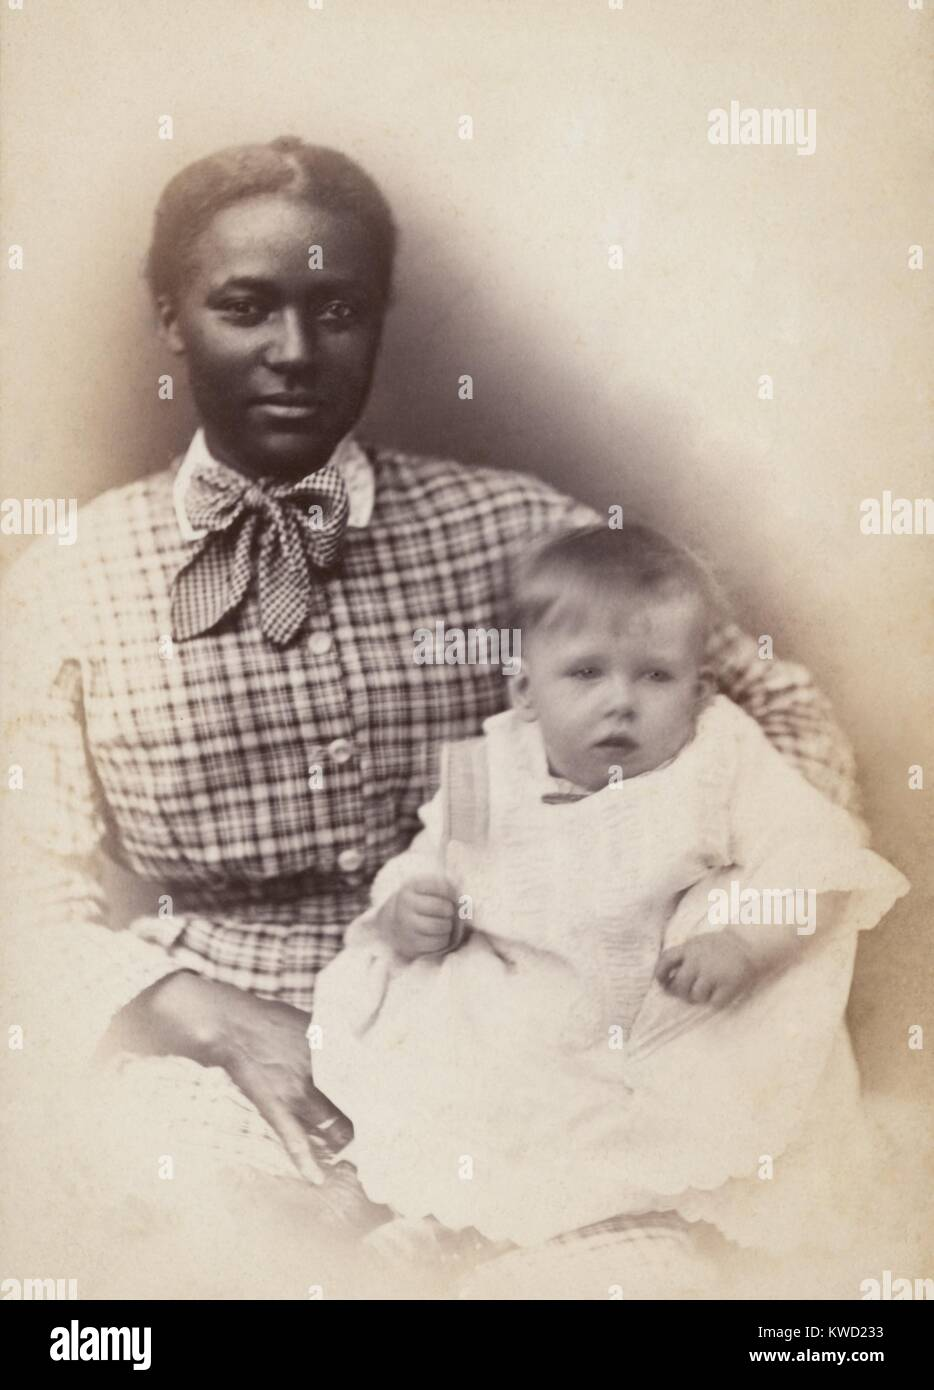 Young African American woman holds a white baby, c. 1870-1880. Photo by Solomon Nunes Carvalho  (BSLOC_2017_20_110) - Stock Image